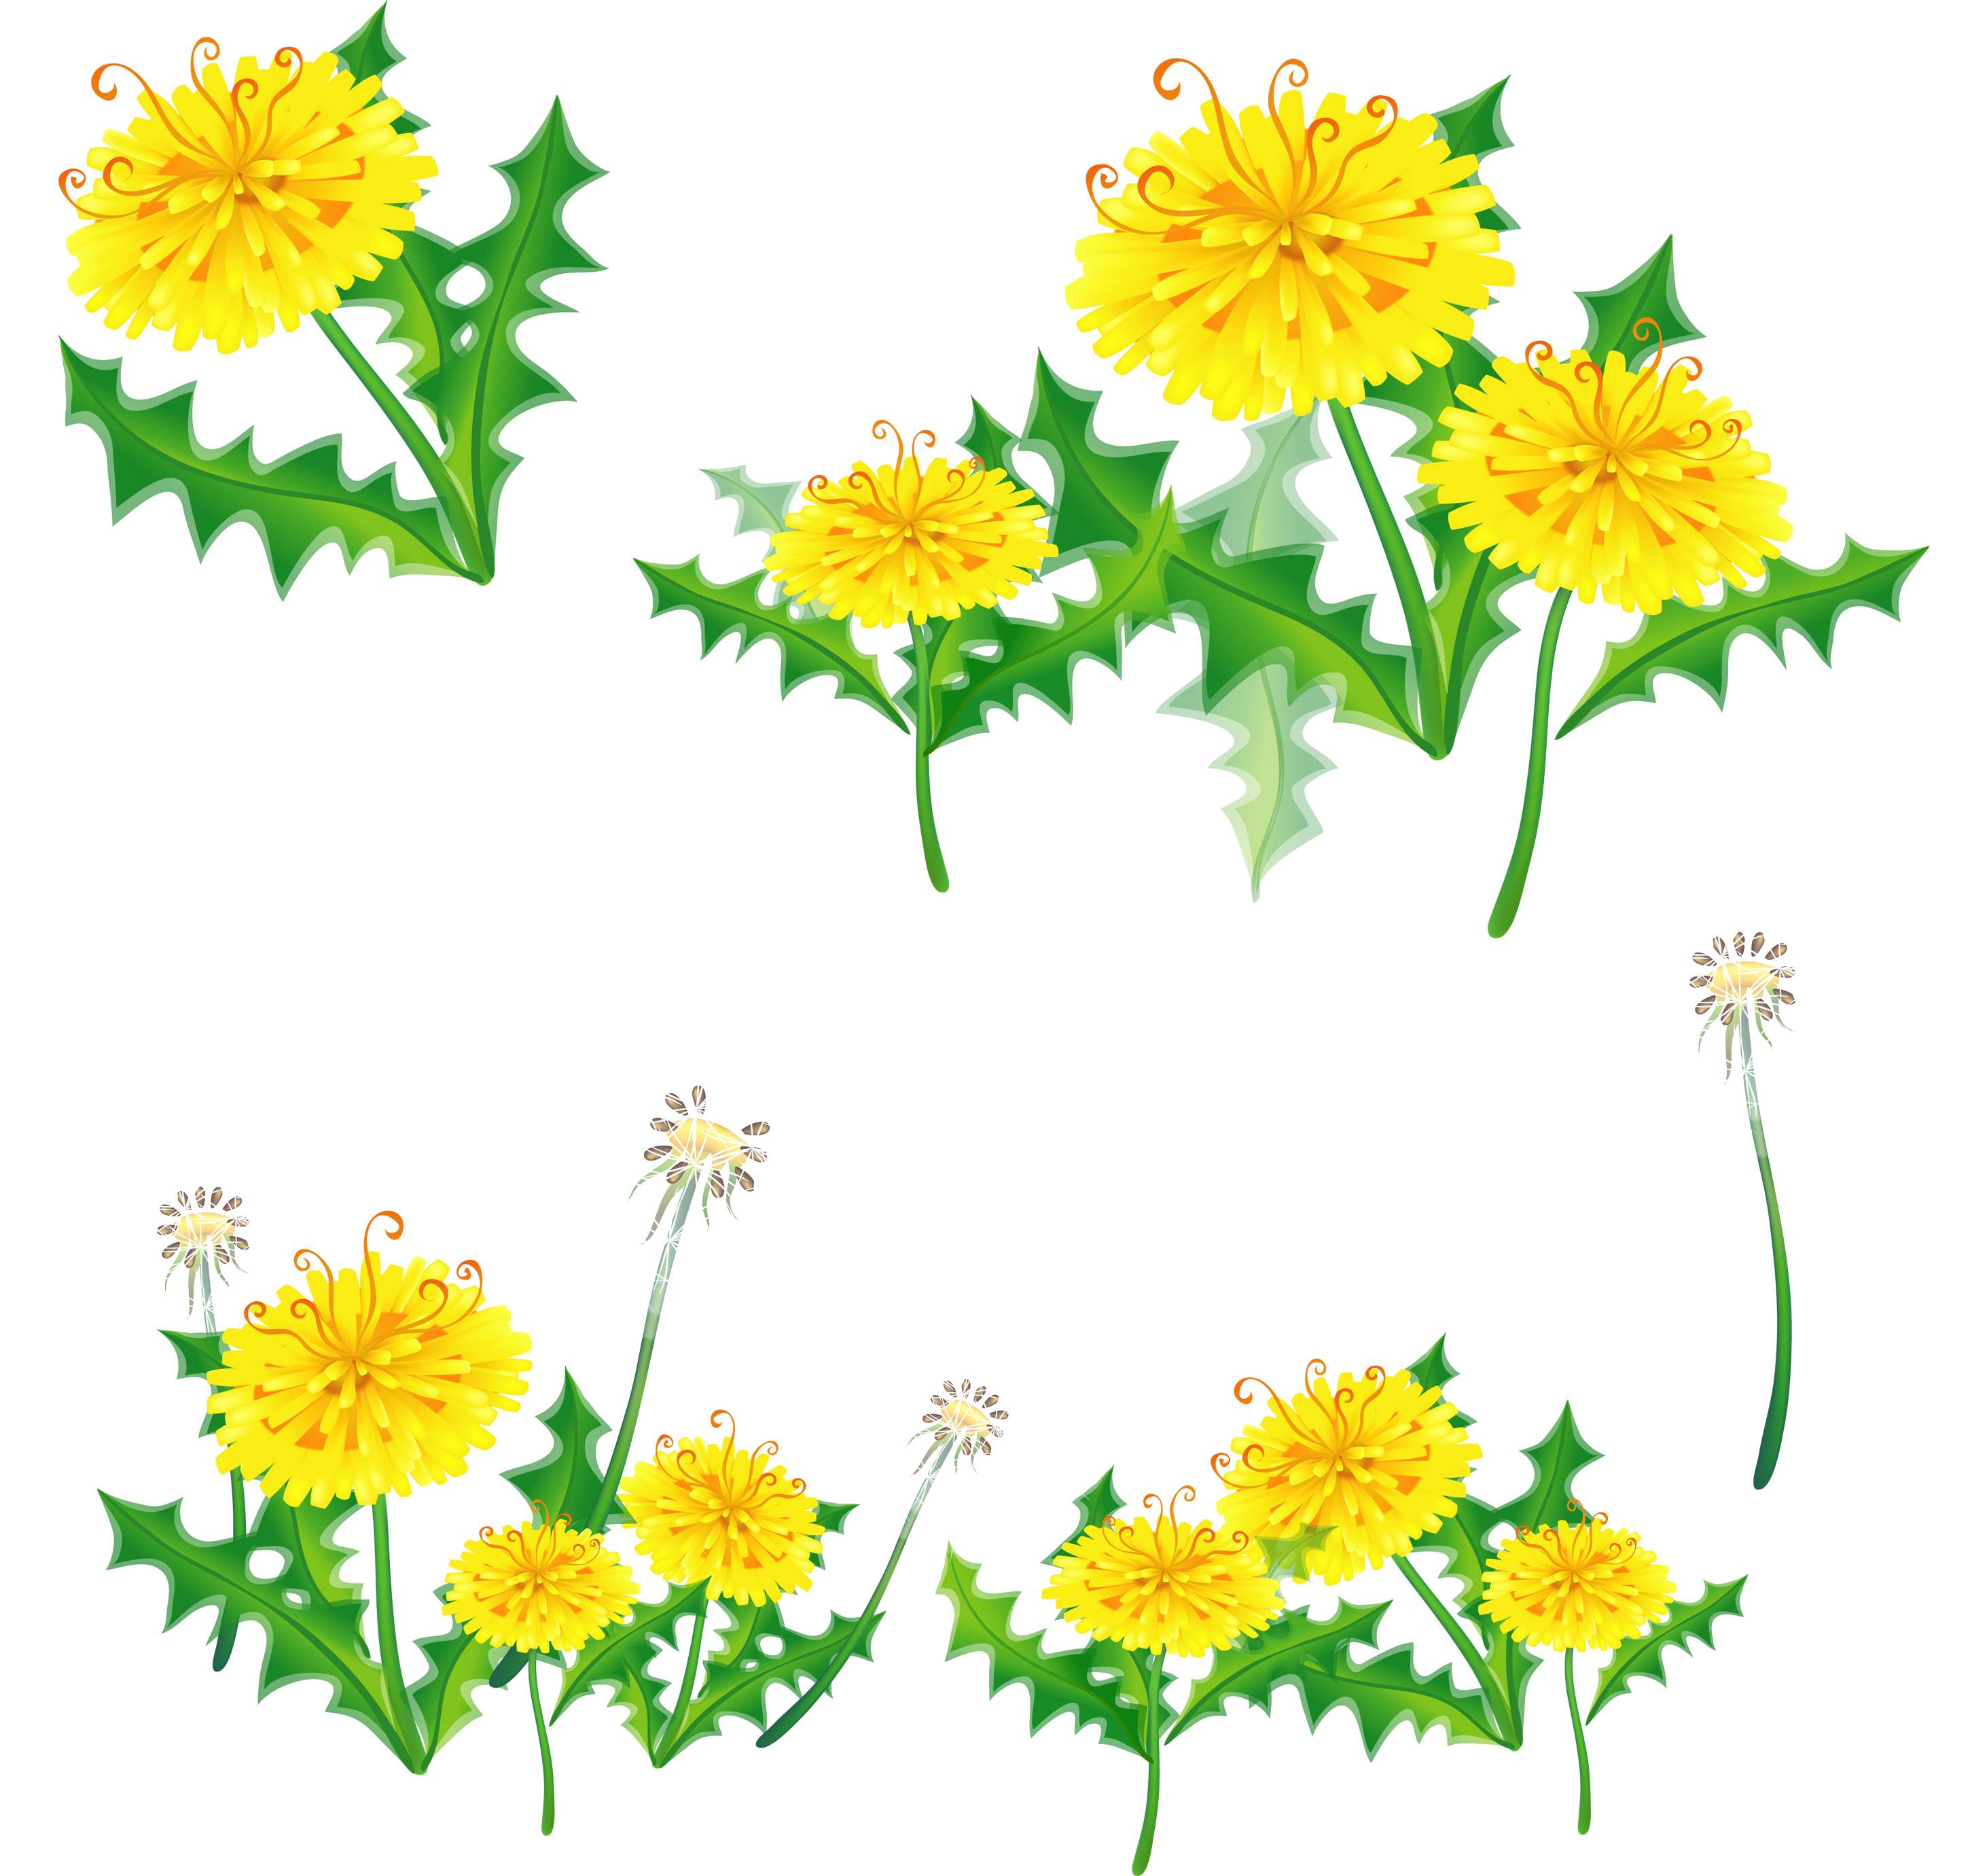 Dandelion flower clipart black and white stock Dandelion PNG images free download black and white stock